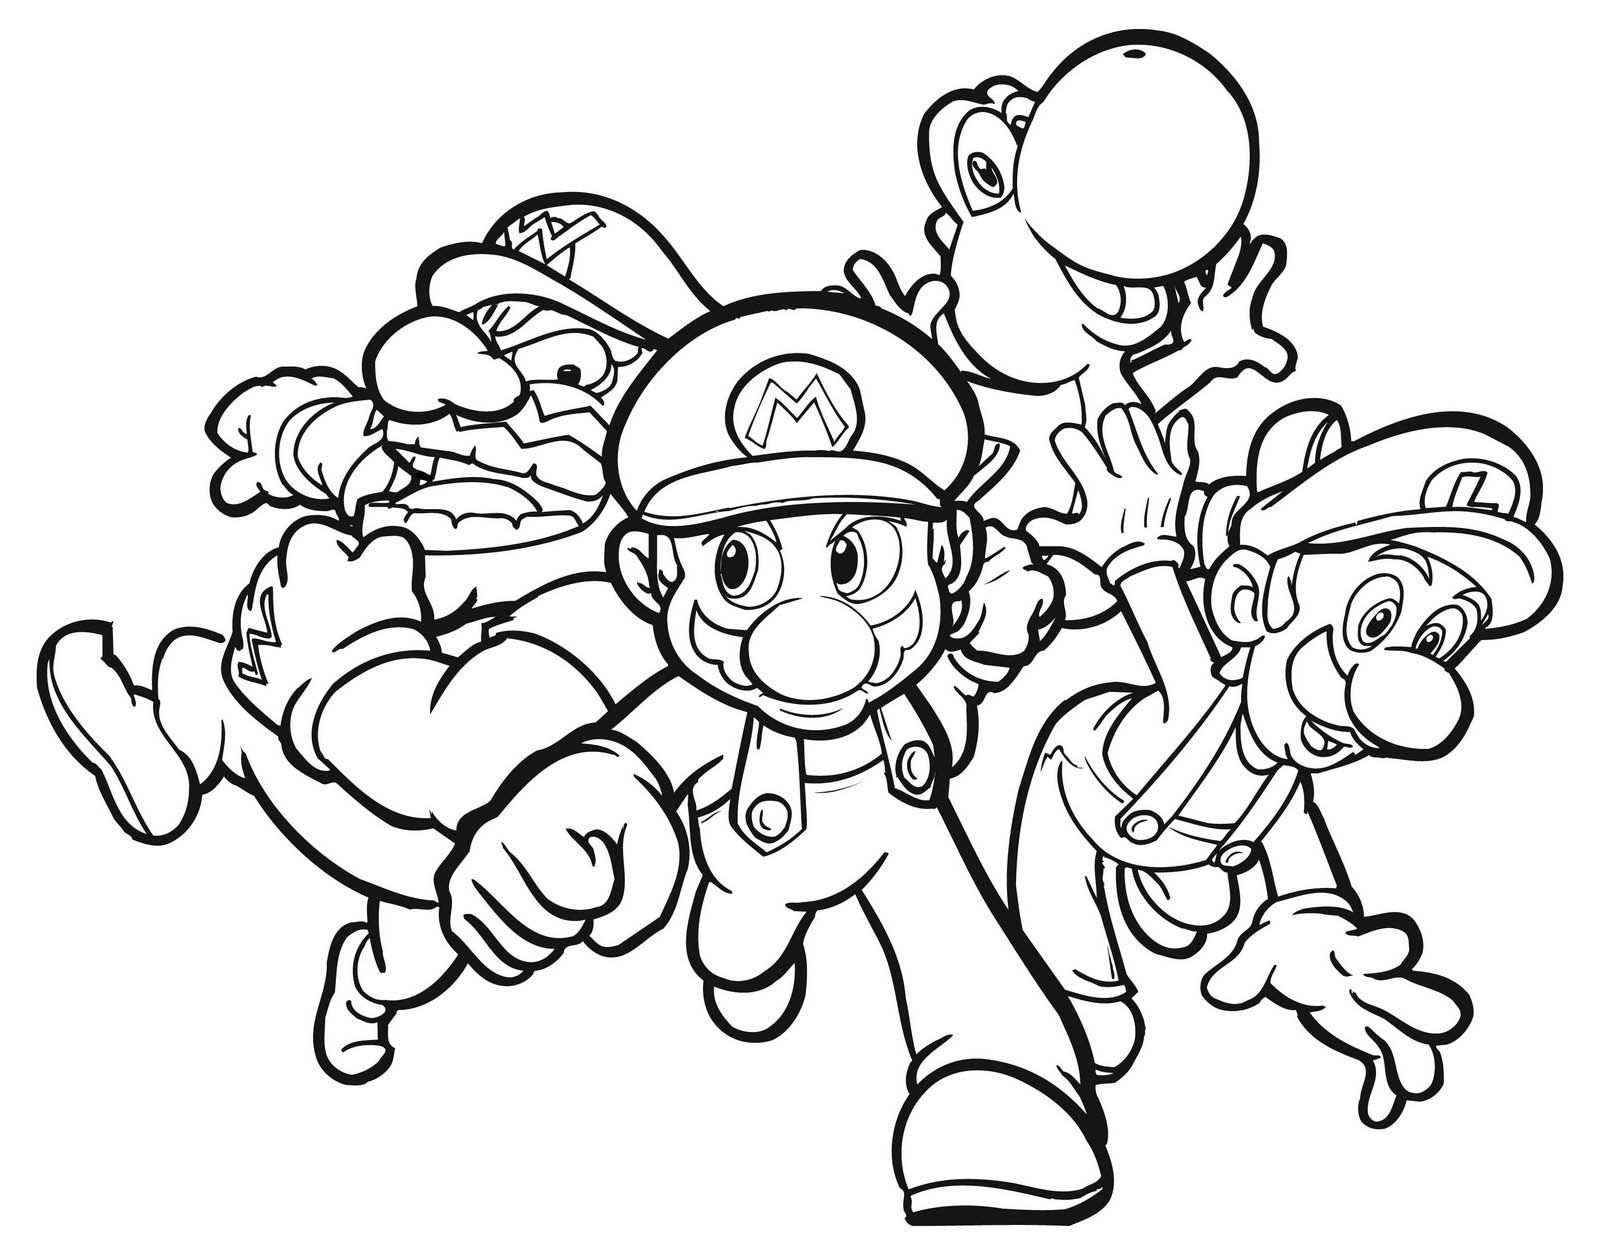 Mario Coloring Pages Download 8i - Save it to your computer